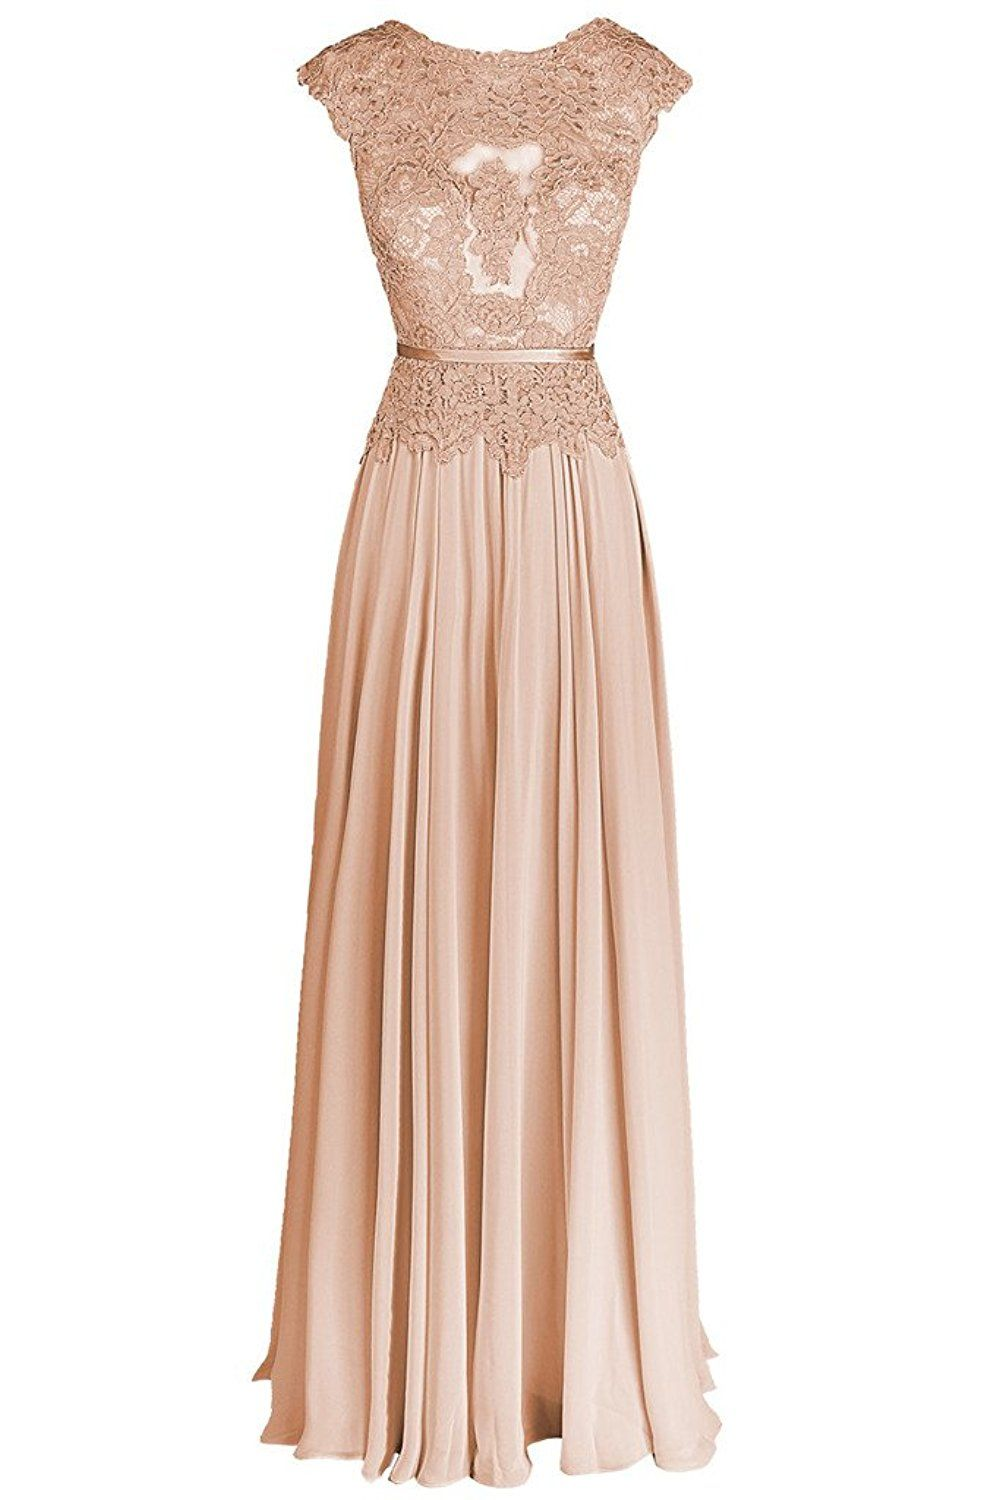 cc8993abdf8 Dresstail Women s Long Chiffon Bridesmaid Dress Lace Prom Evening Gown Cap  Sleeves Champagne US 2